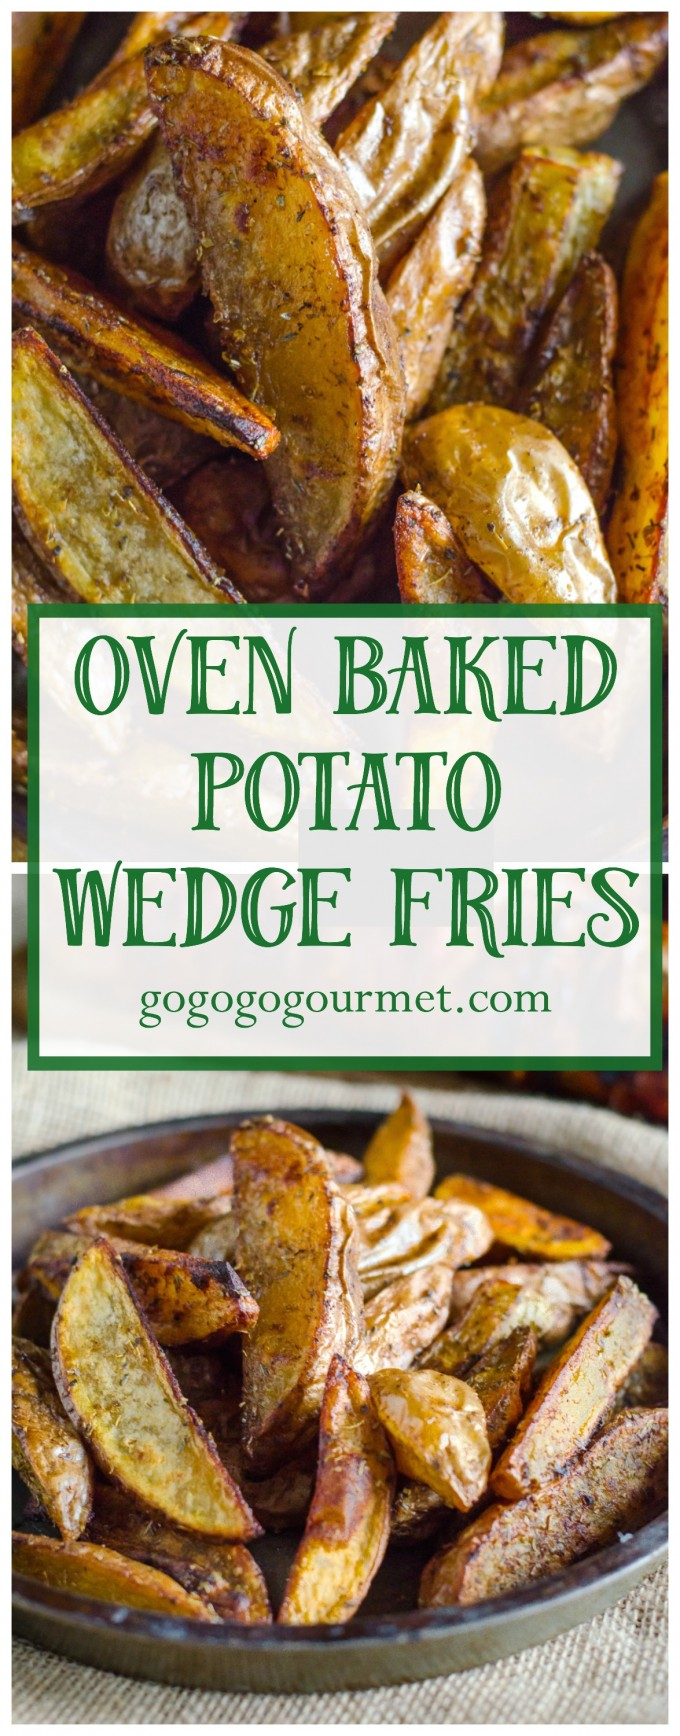 These Oven Baked Potato wedges are PERFECT- crispy on the outside, and soft and fluffy on the inside! Seasoned Oven Baked Potato Wedge Fries #gogogogourmet #ovenbakedpotatowedges #homemadefries #potatowedges #easysidedish via @gogogogourmet